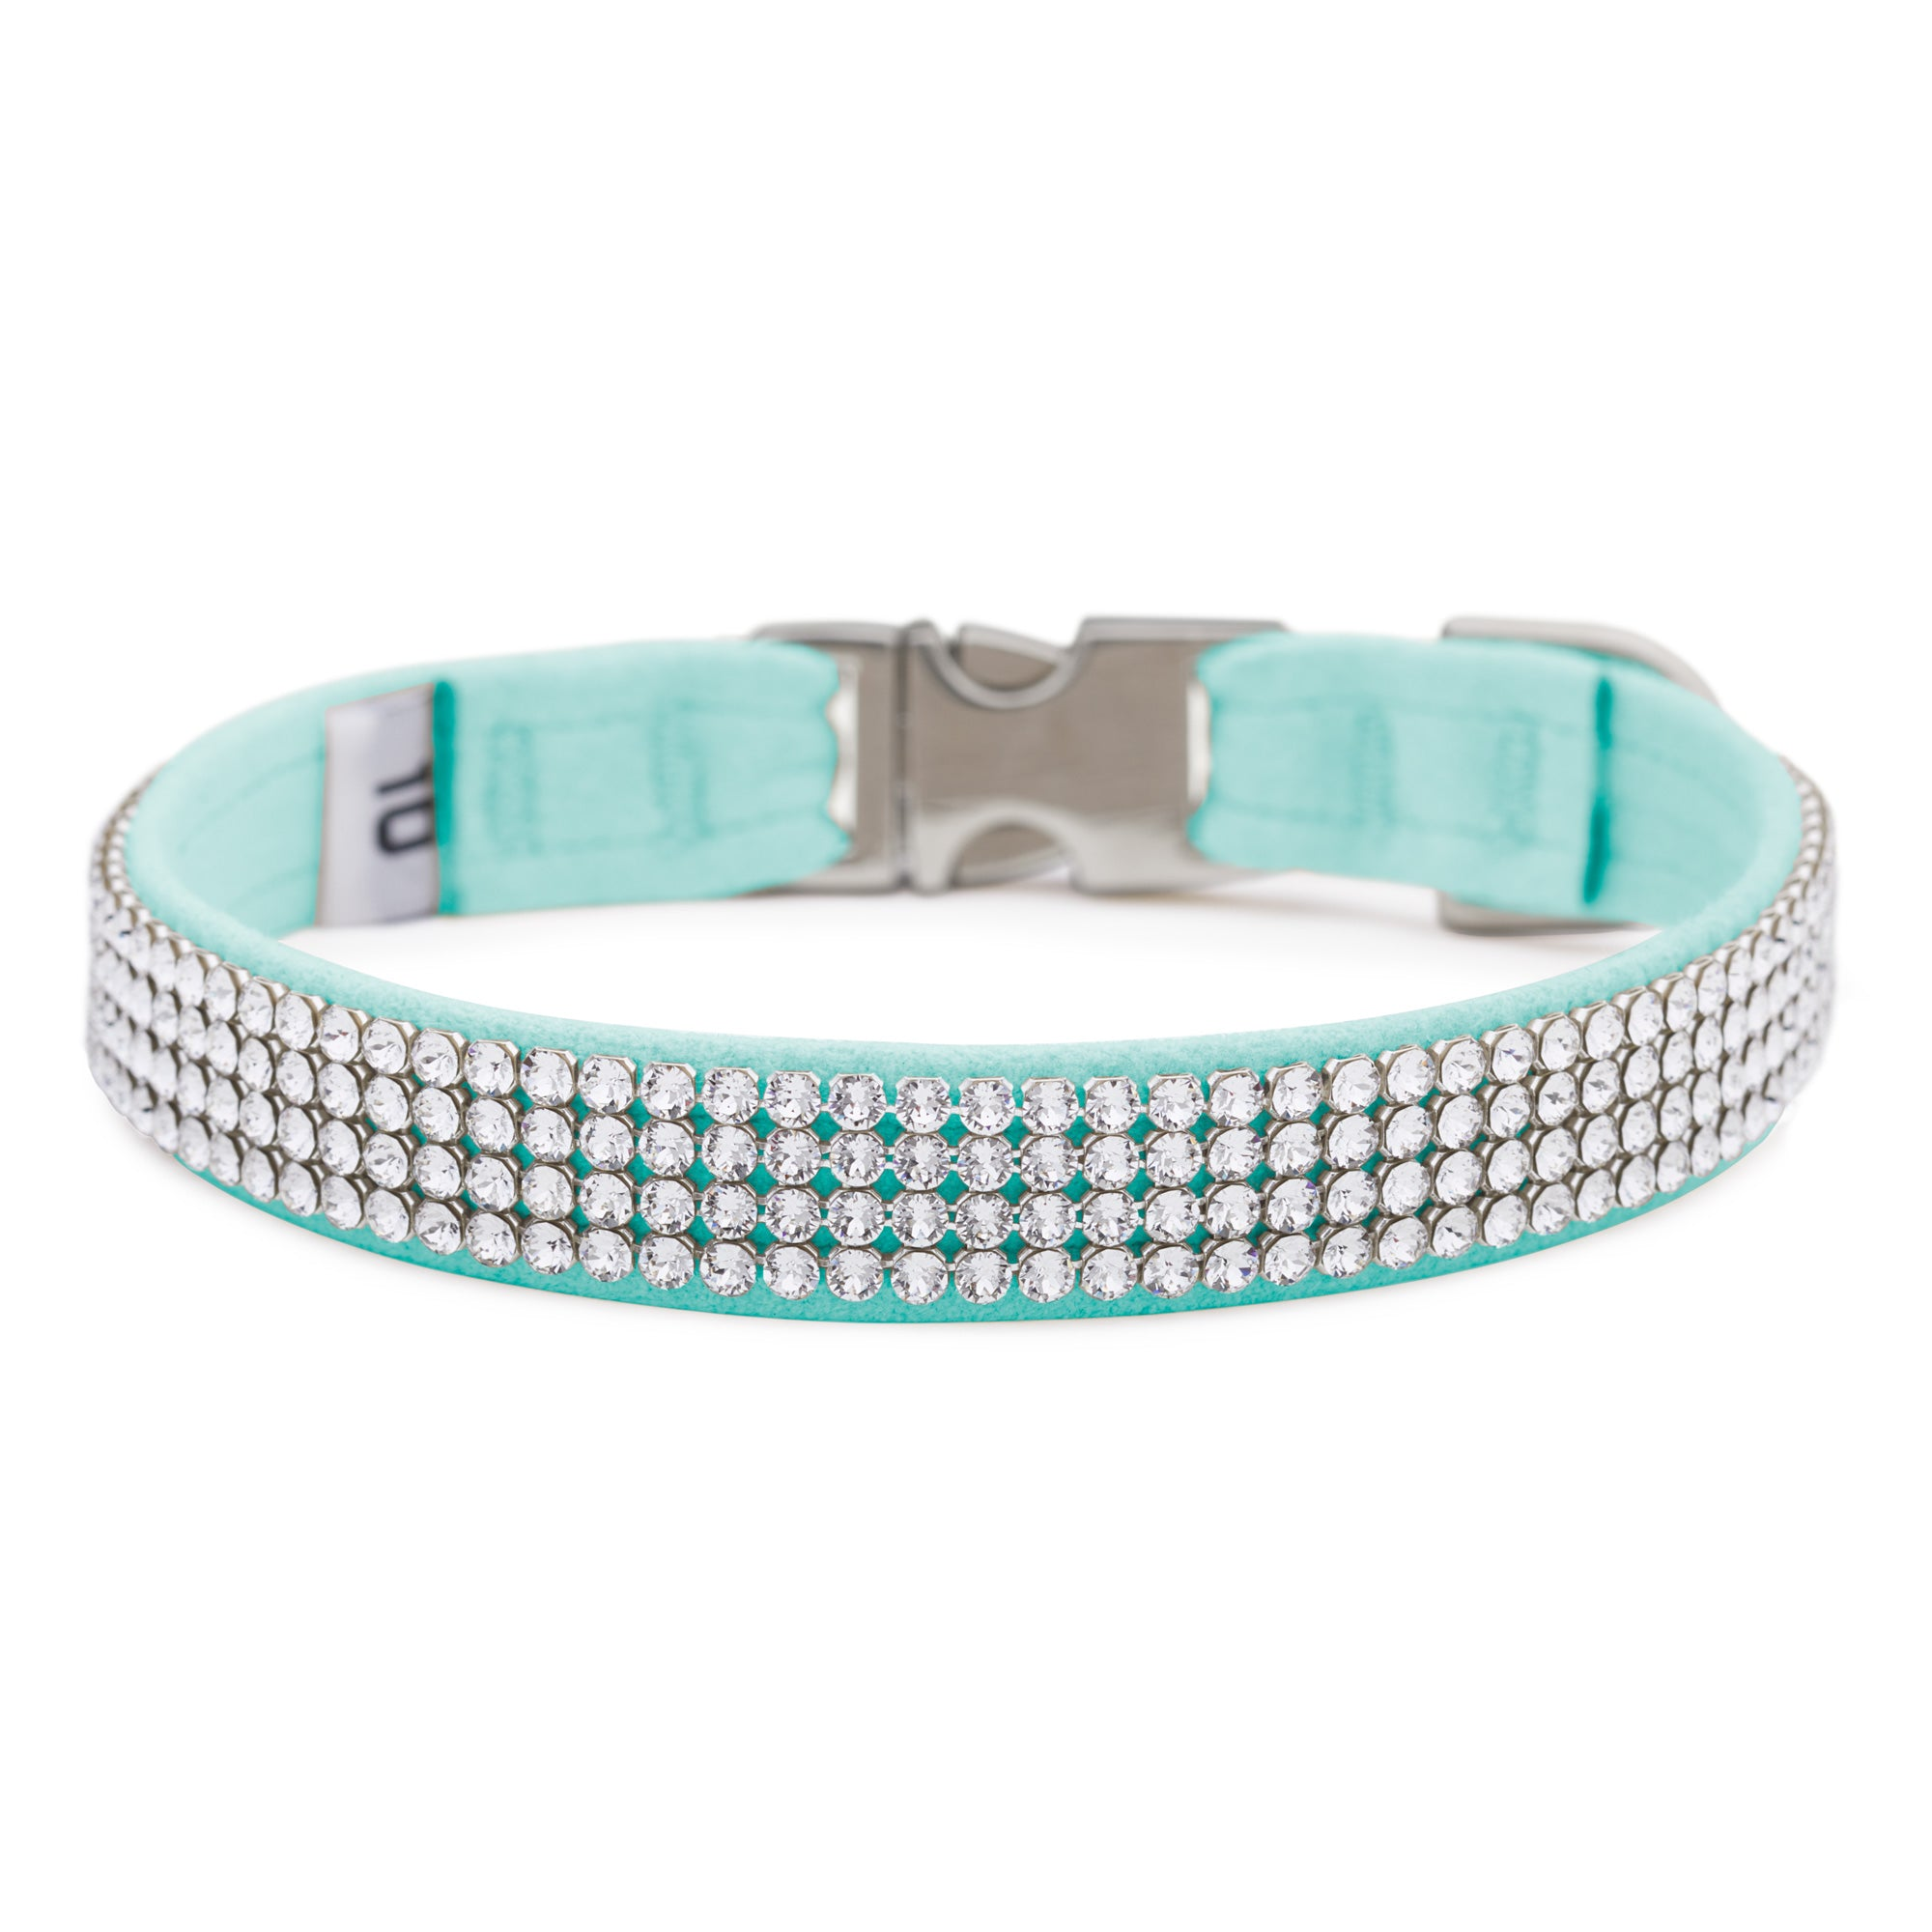 Tiffi Blue 4 Row Giltmore Perfect Fit Collar